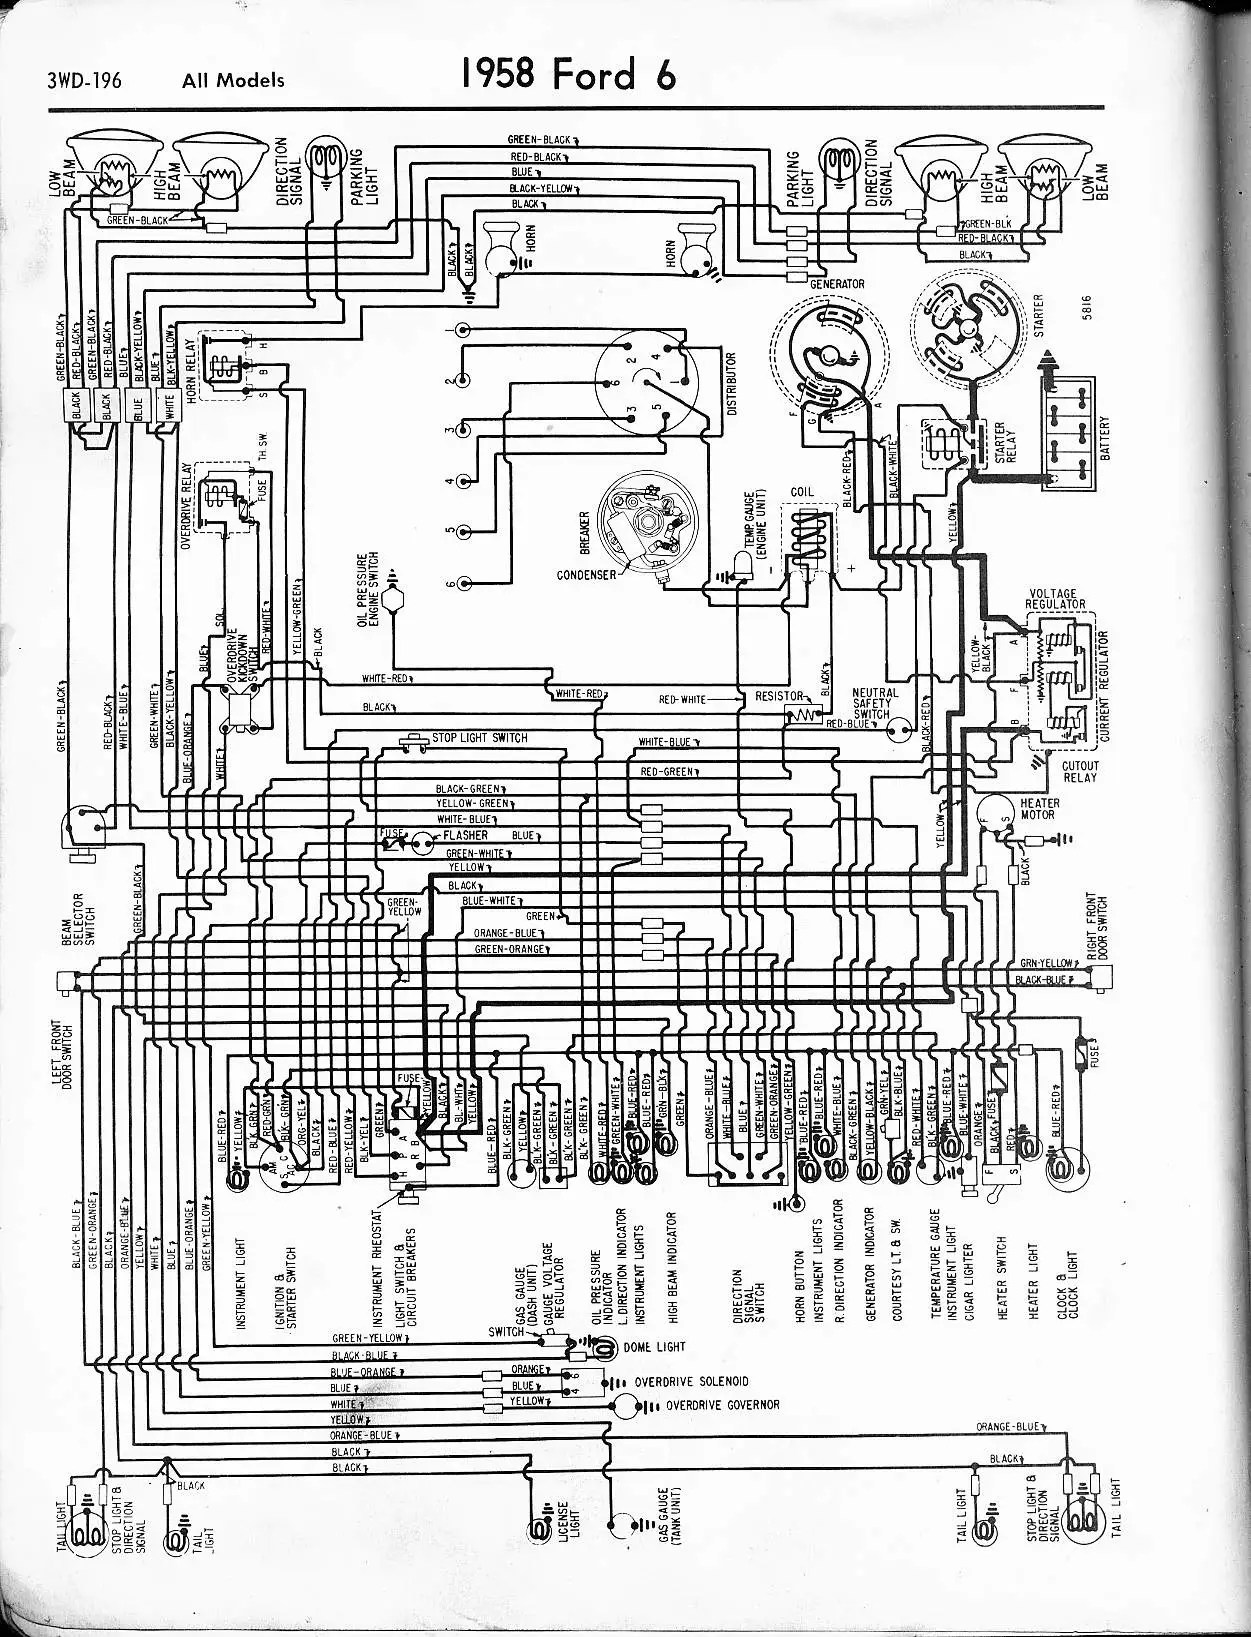 hight resolution of 1956 ford wiring harness wiring diagram todays ignition wiring harness 1955 ford wiring harness completed wiring